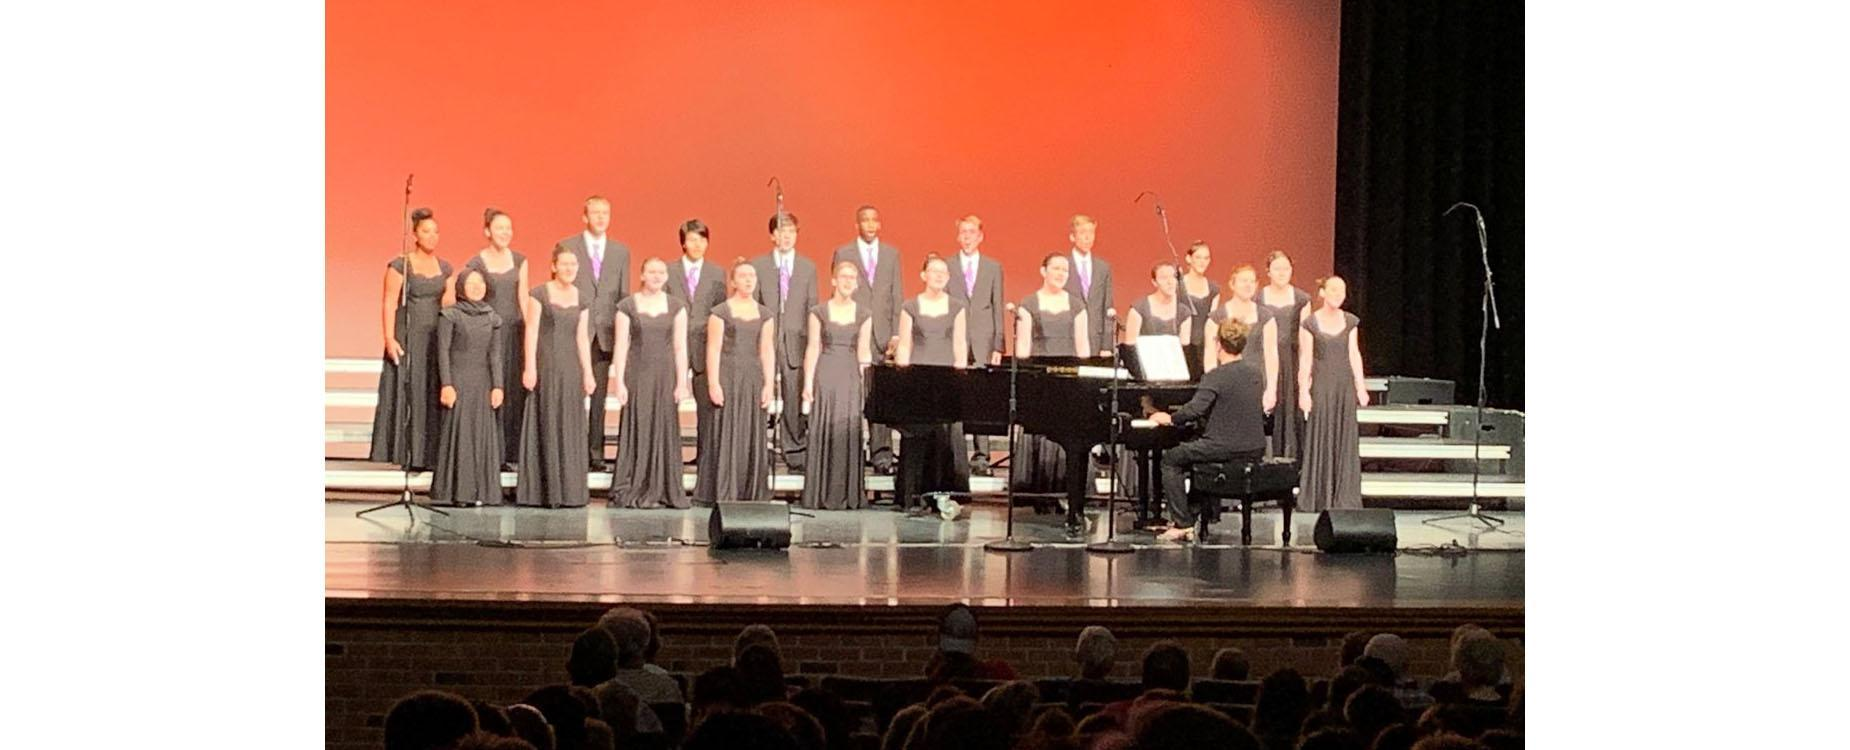 zchs eagle choirs